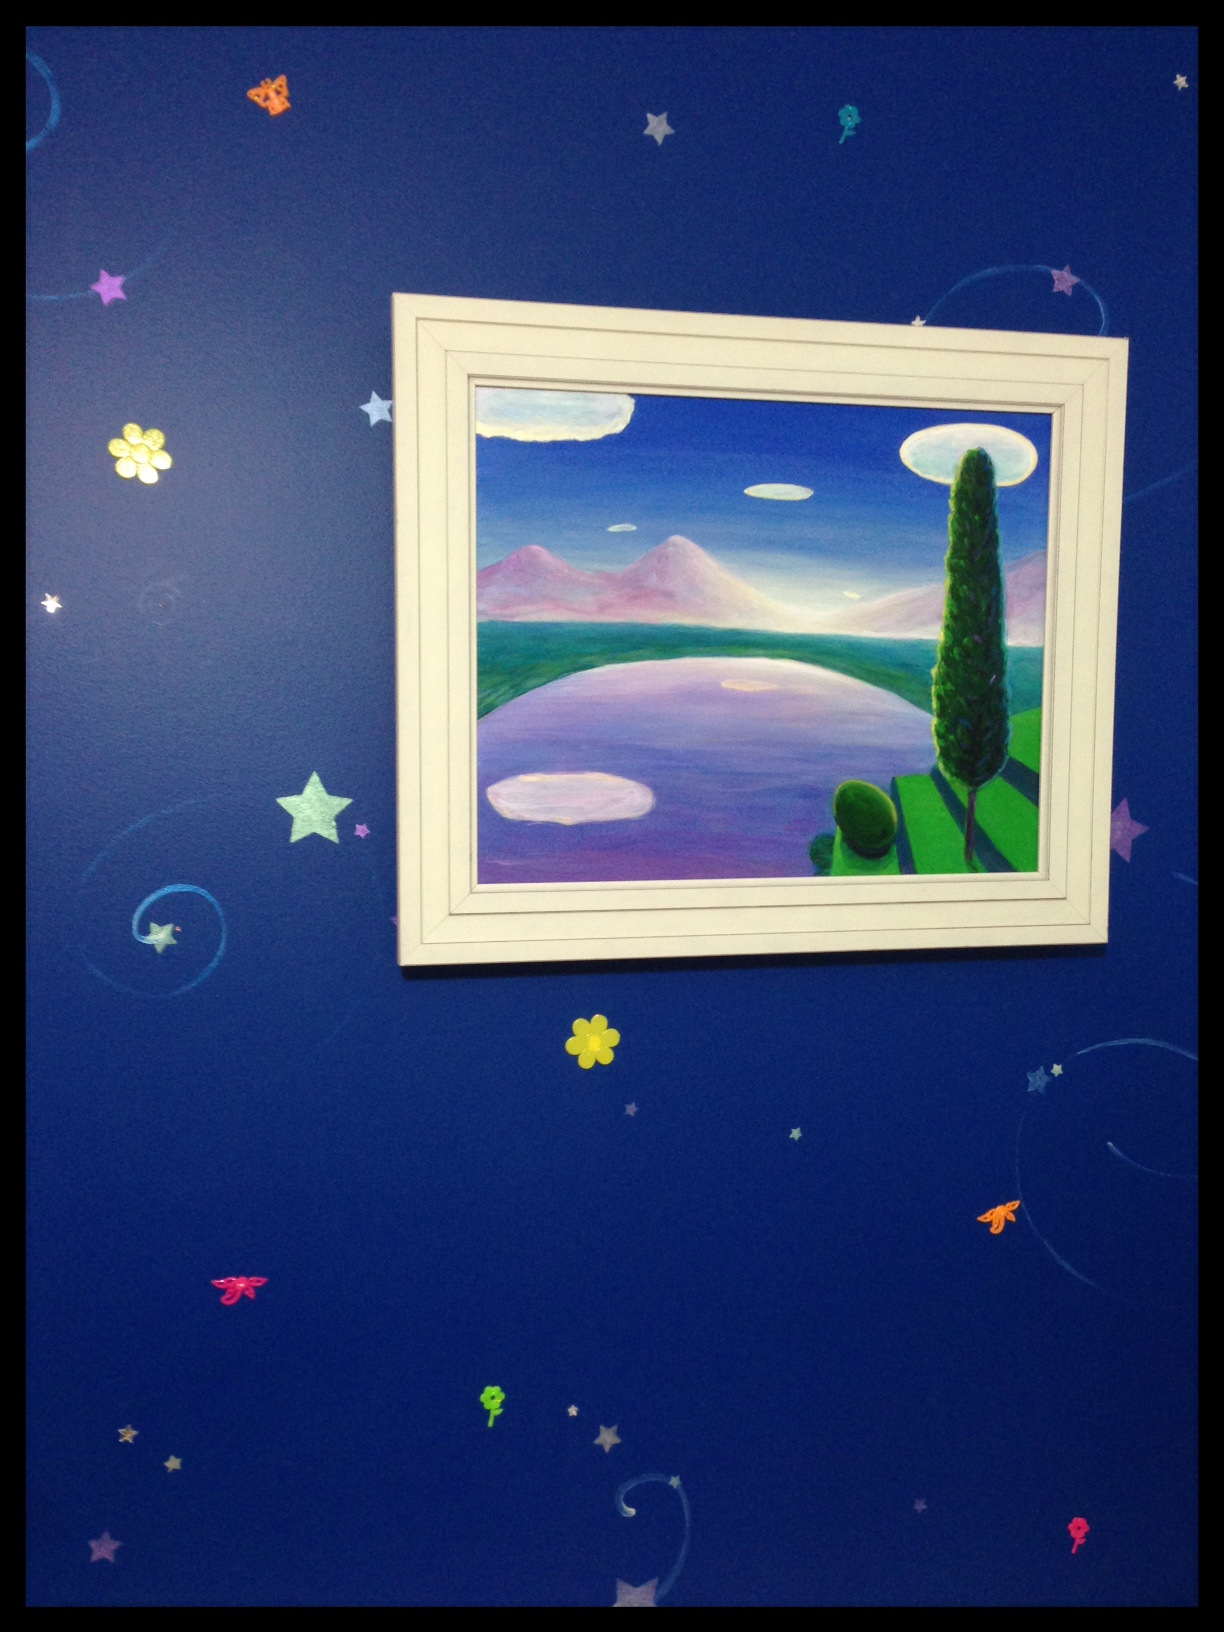 Blue wall with painting hanging on it and stars pained on a dark blue wall.